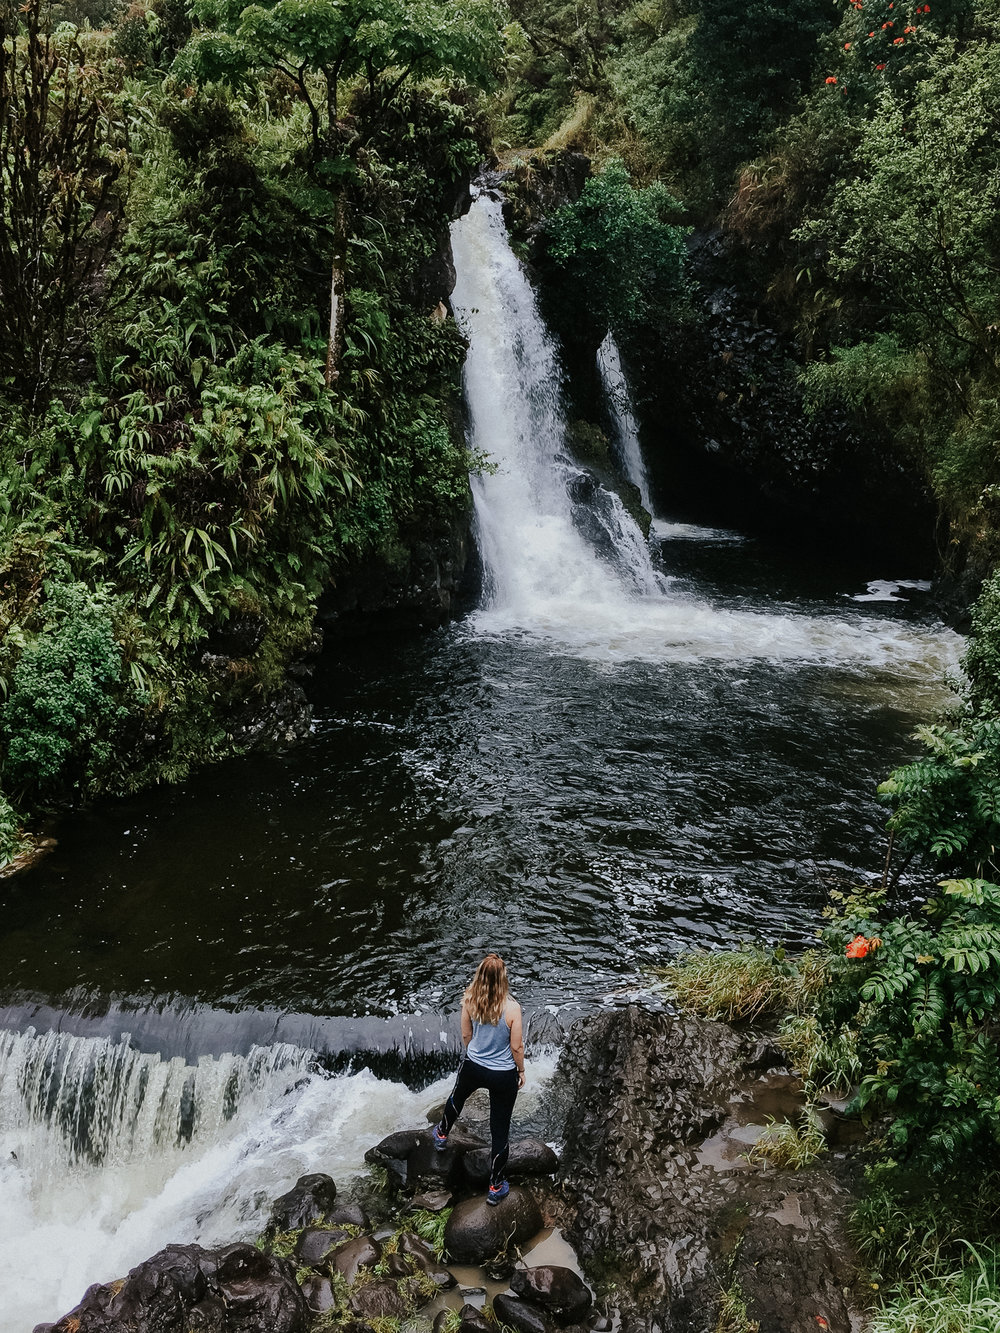 You can literally hop out of the car and go watch a beautiful waterfall when you are on the Road to Hana. Even if you are not prepared to hike (especially in the rain!) it's still majestic in every way